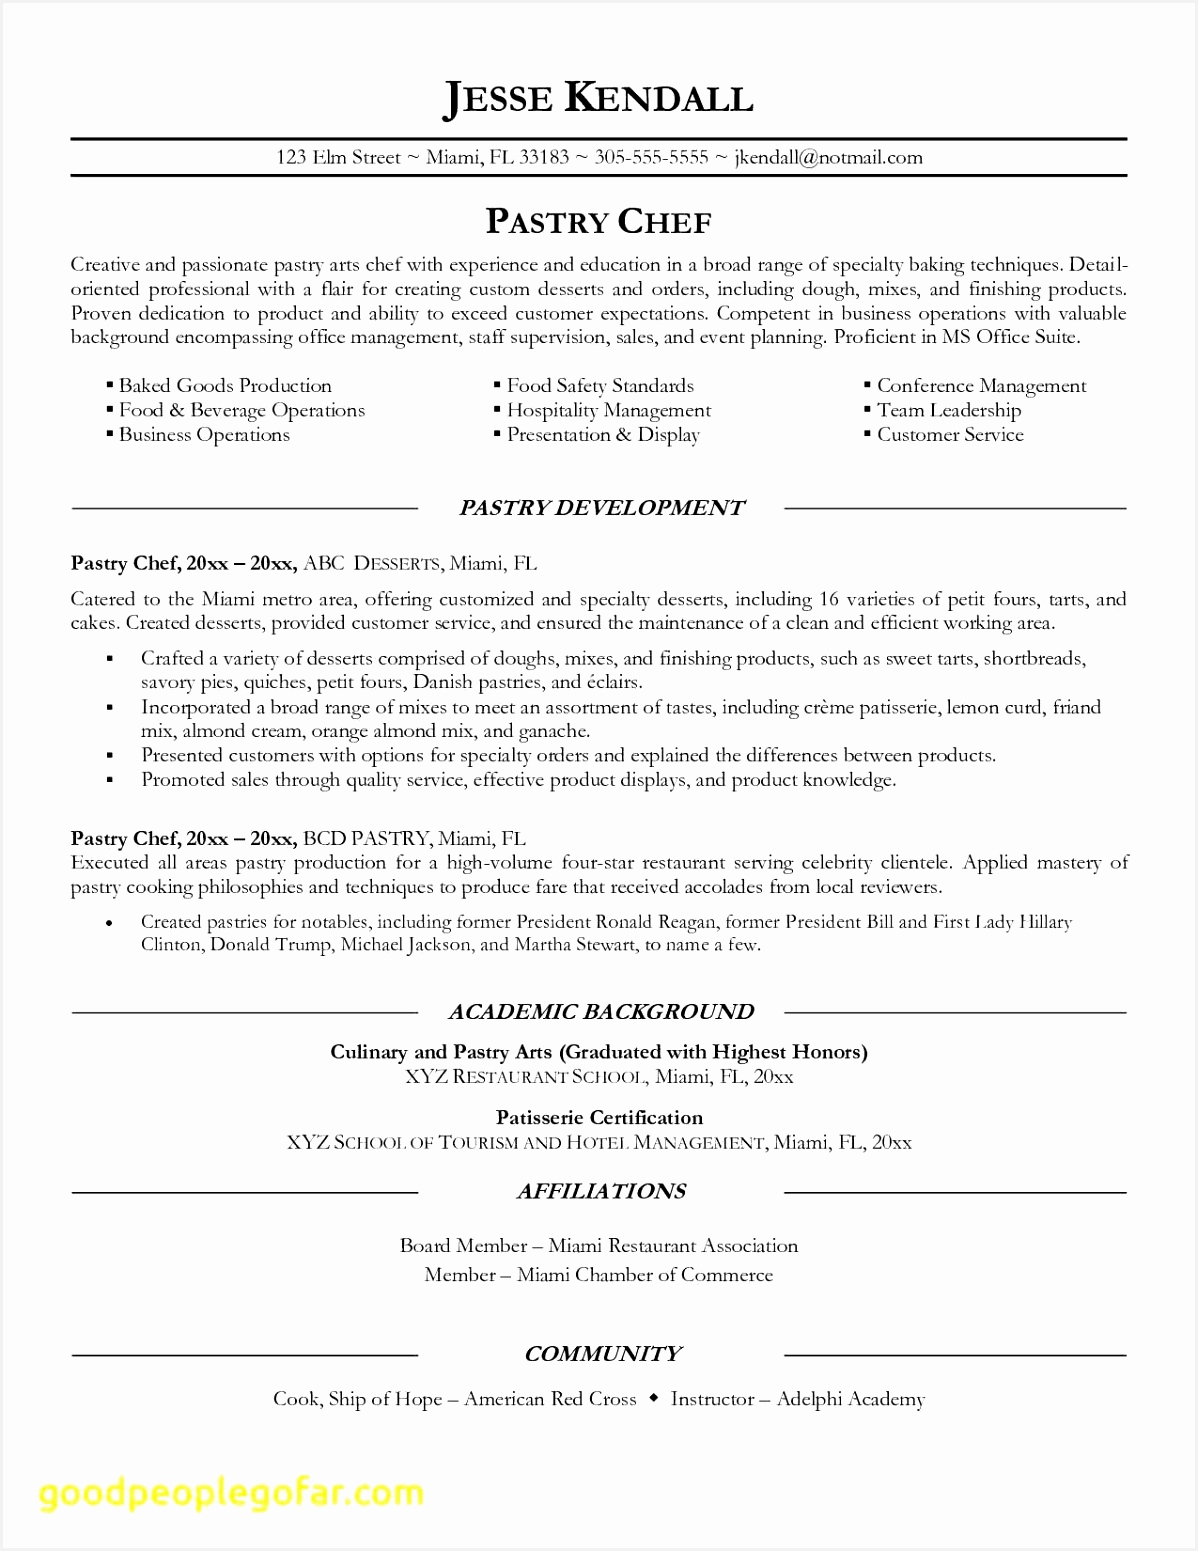 Food Safety Manager Sample Resume A3vyl Unique Chef Resume Objective Examples Pastry Chef Resume Awesome Resume for15511198